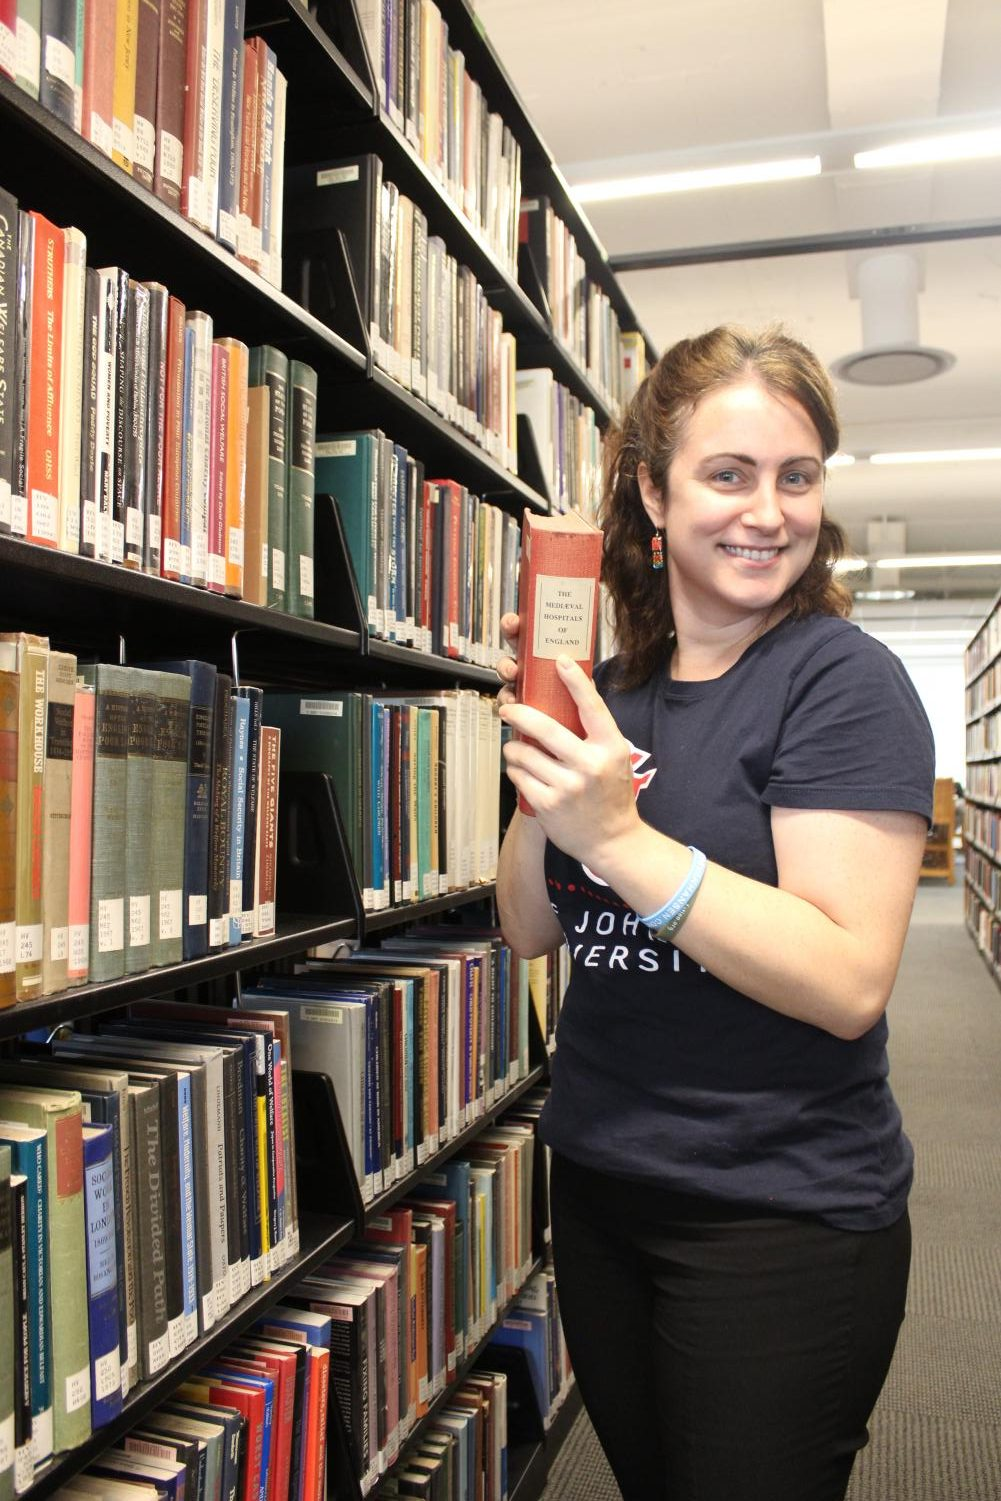 Heather Ball is the new Student Success Librarian at St. John's.